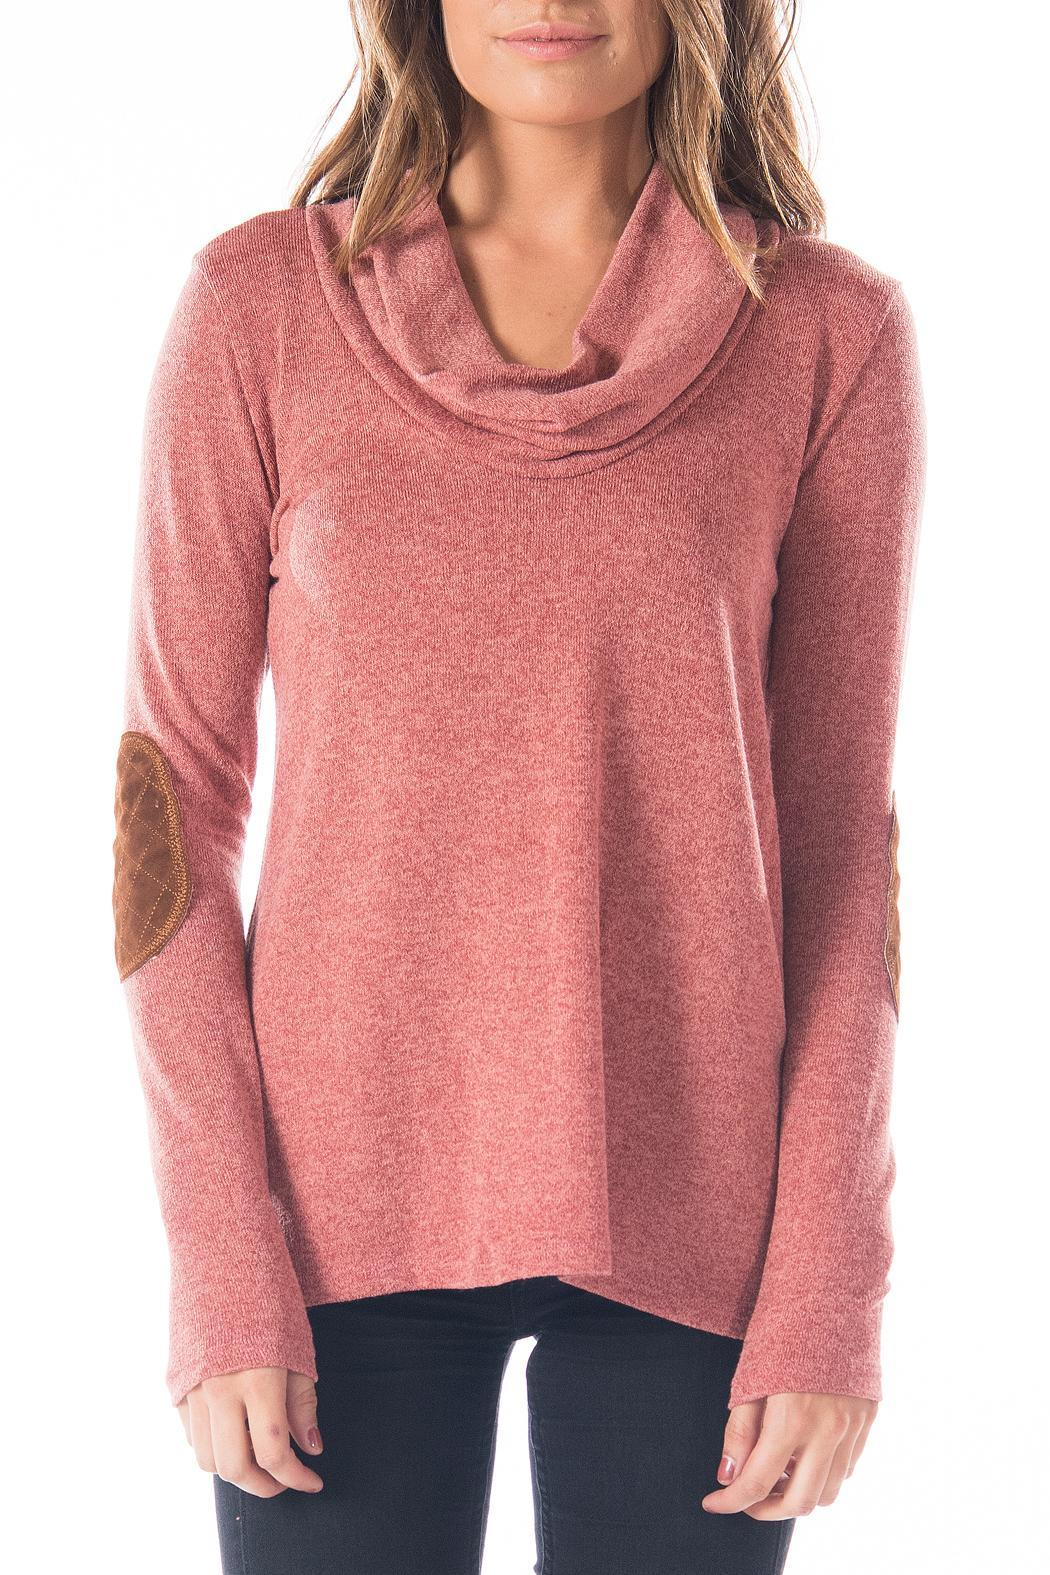 Gilli Soft Cowl Neck Sweater from California by CleverElement ...